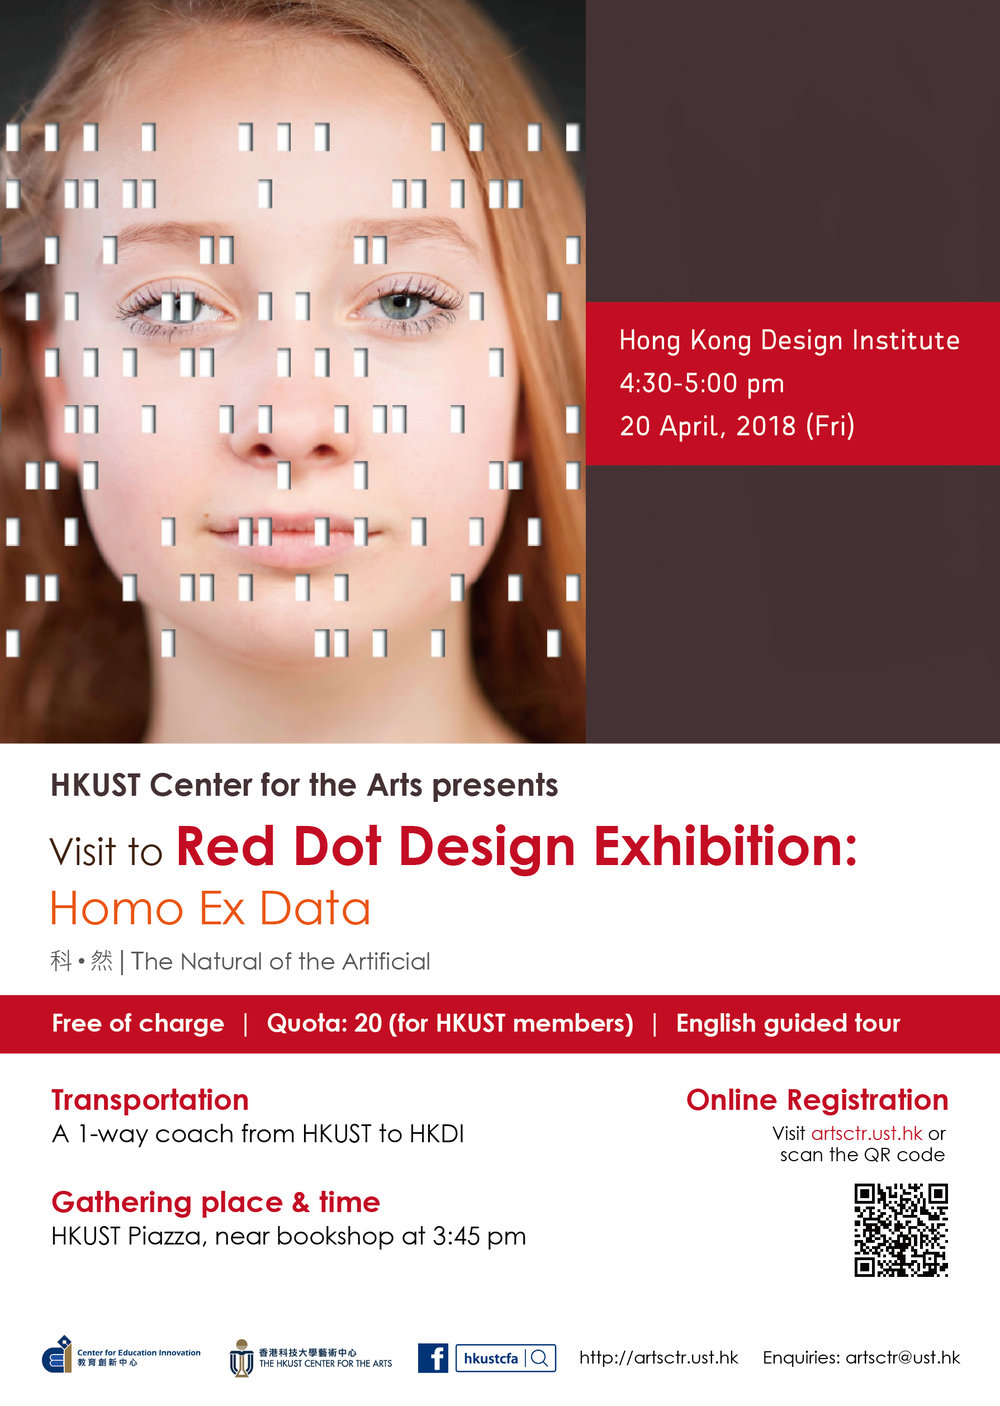 Visit to Red Dot Design Exhibition: Homo Ex Data  Apr 20, 2018